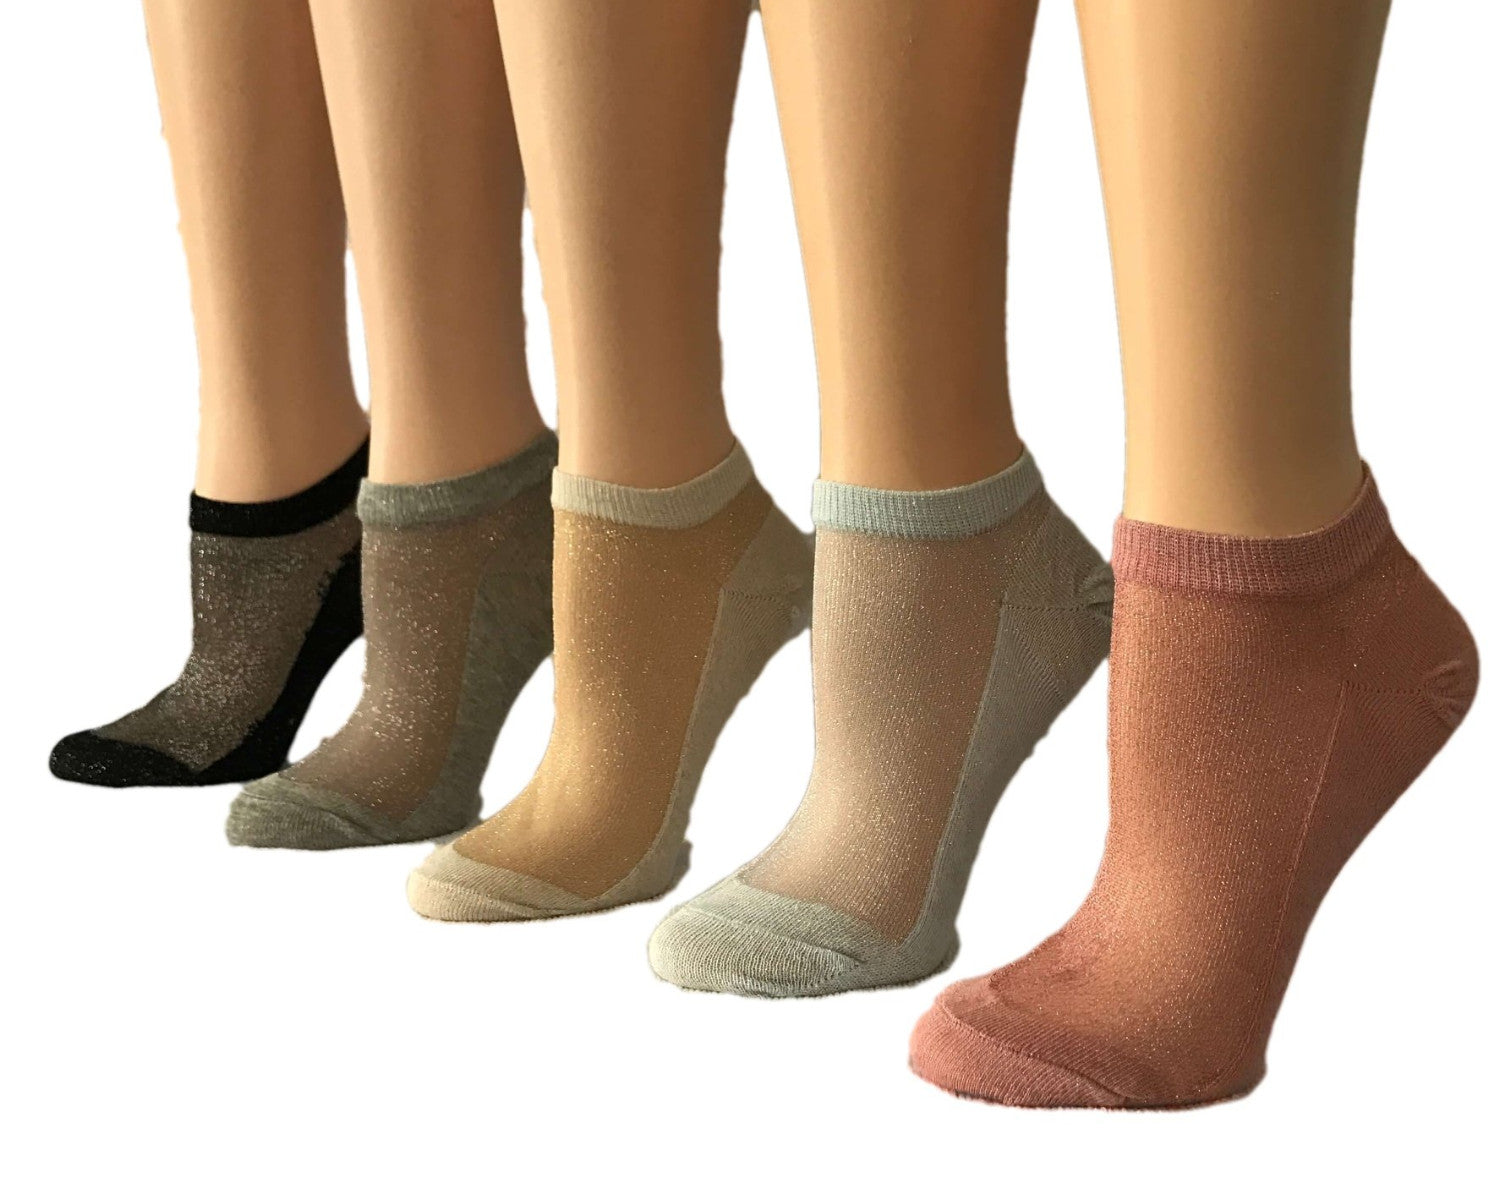 Dazzling Glittered Sheer Socks (Pack of 5 Pairs) - Global Trendz Fashion®